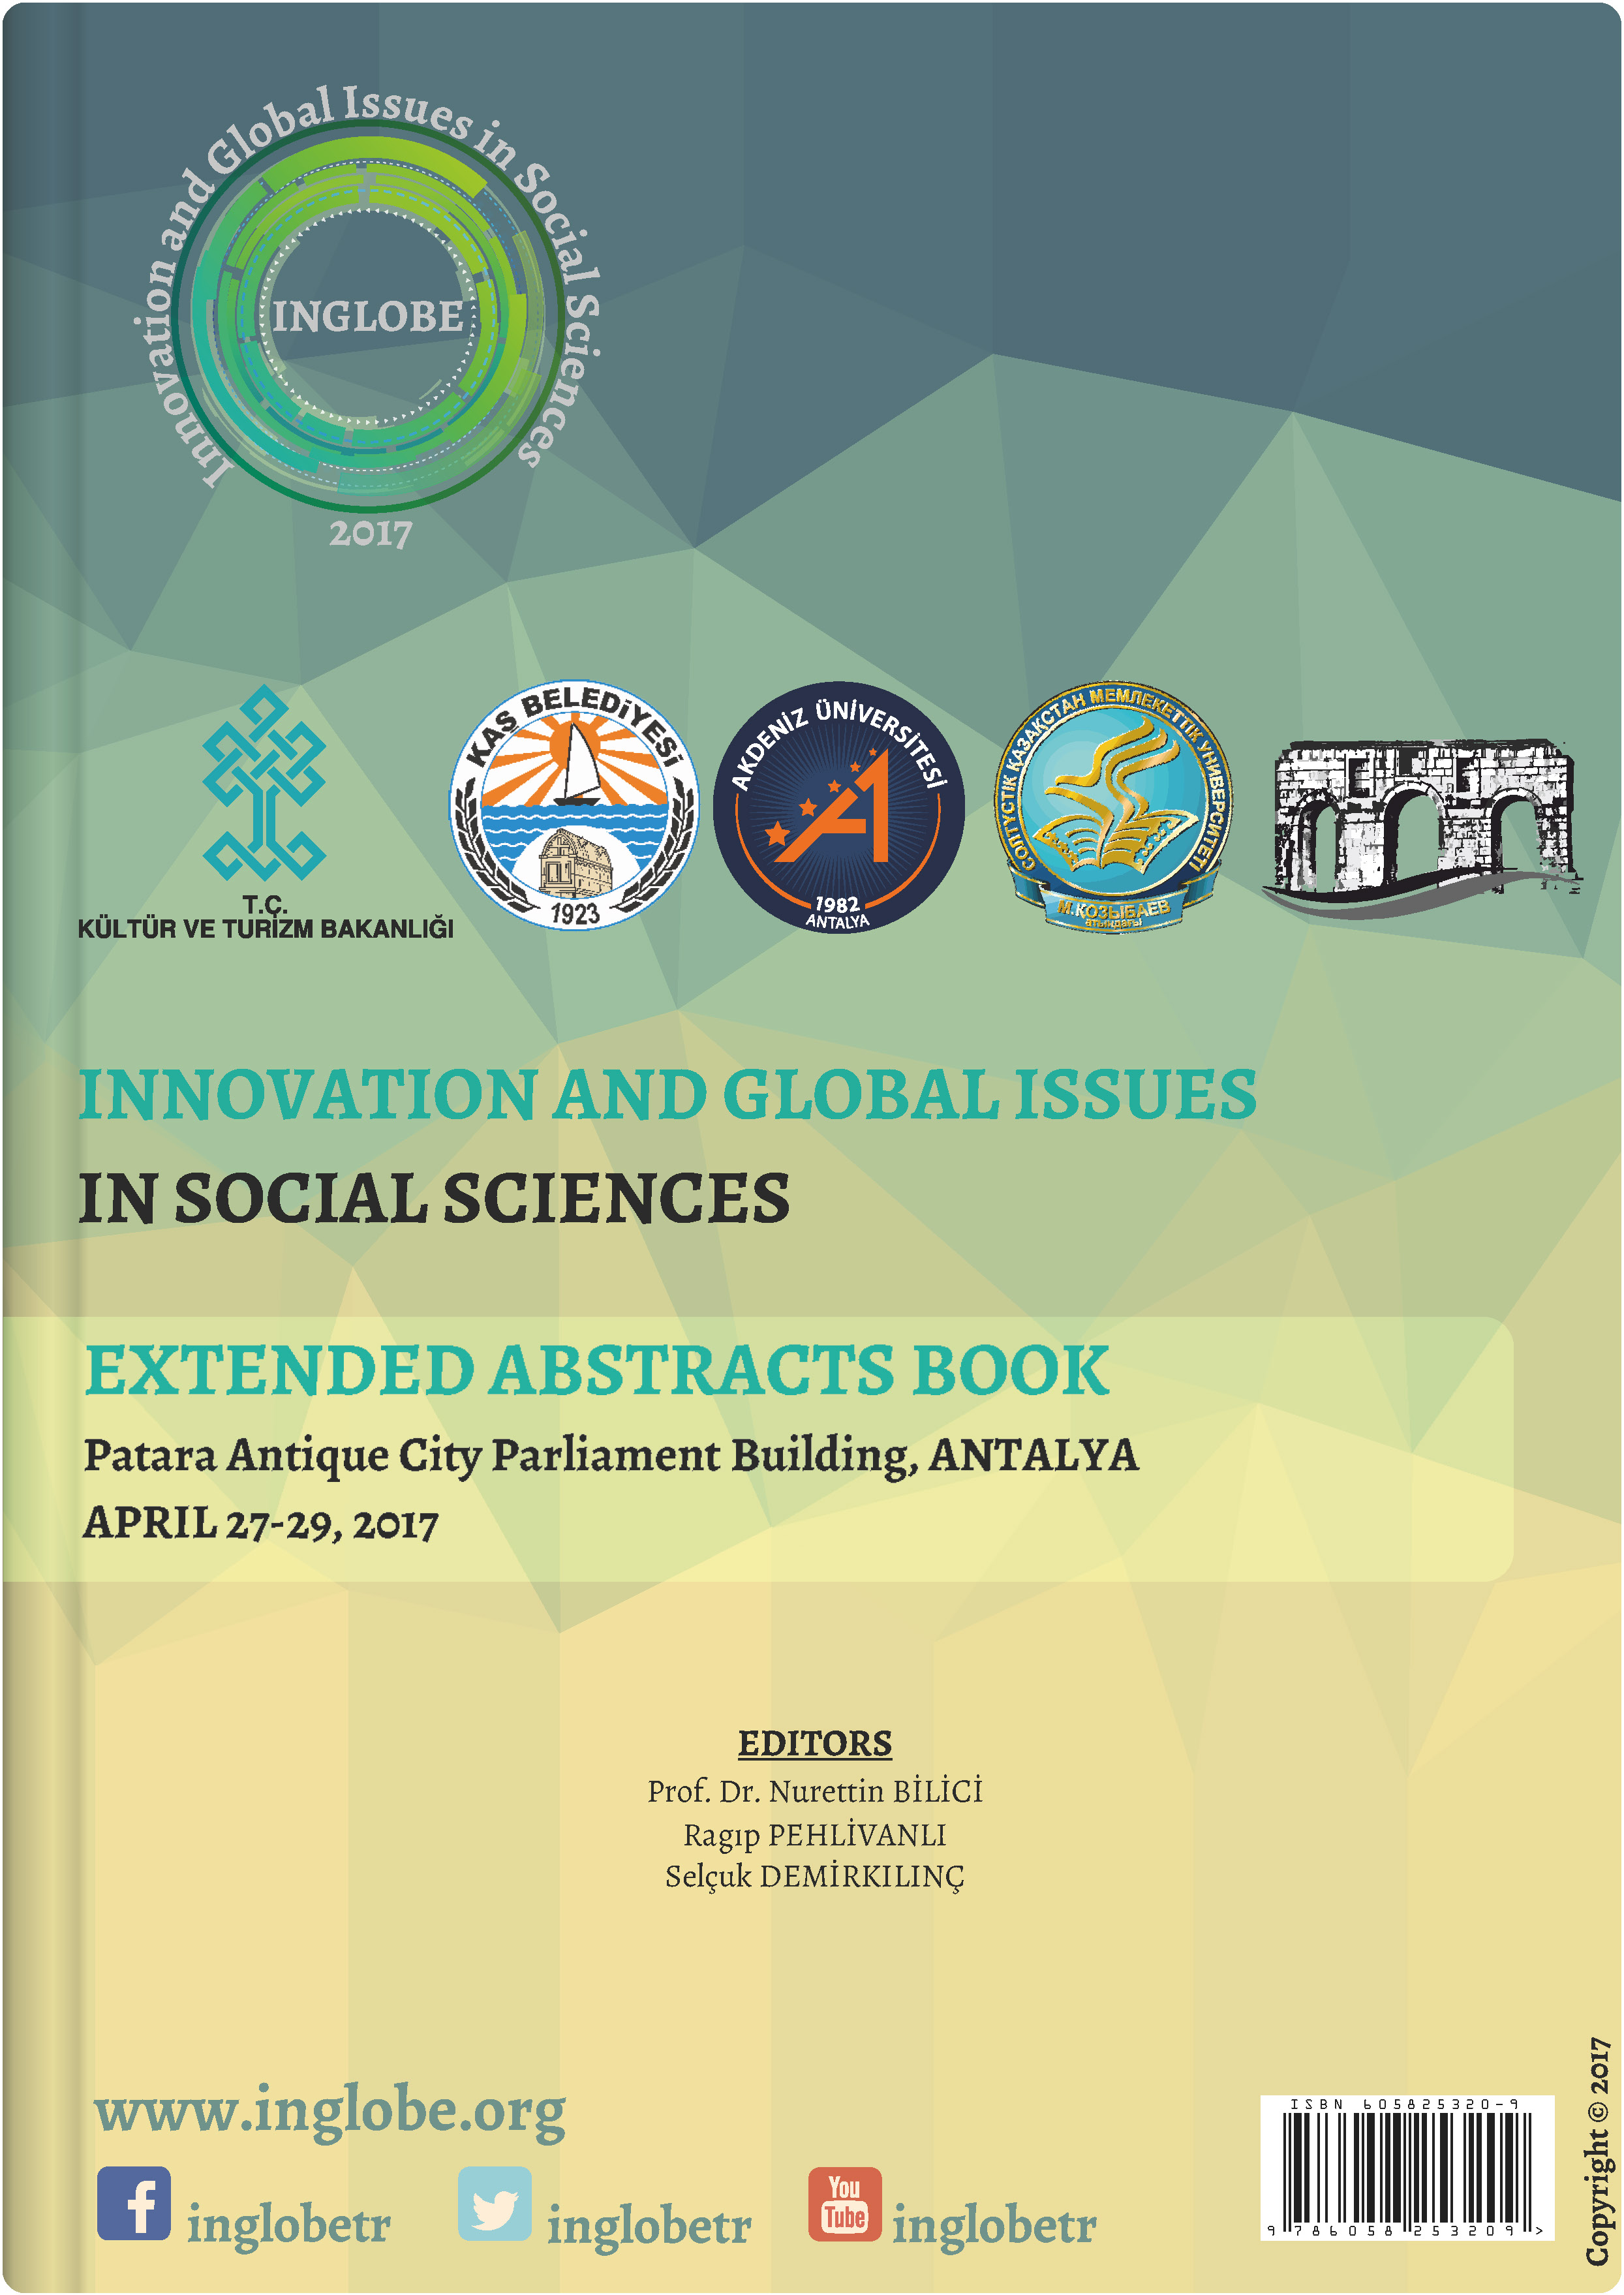 Extended Abstracts Book